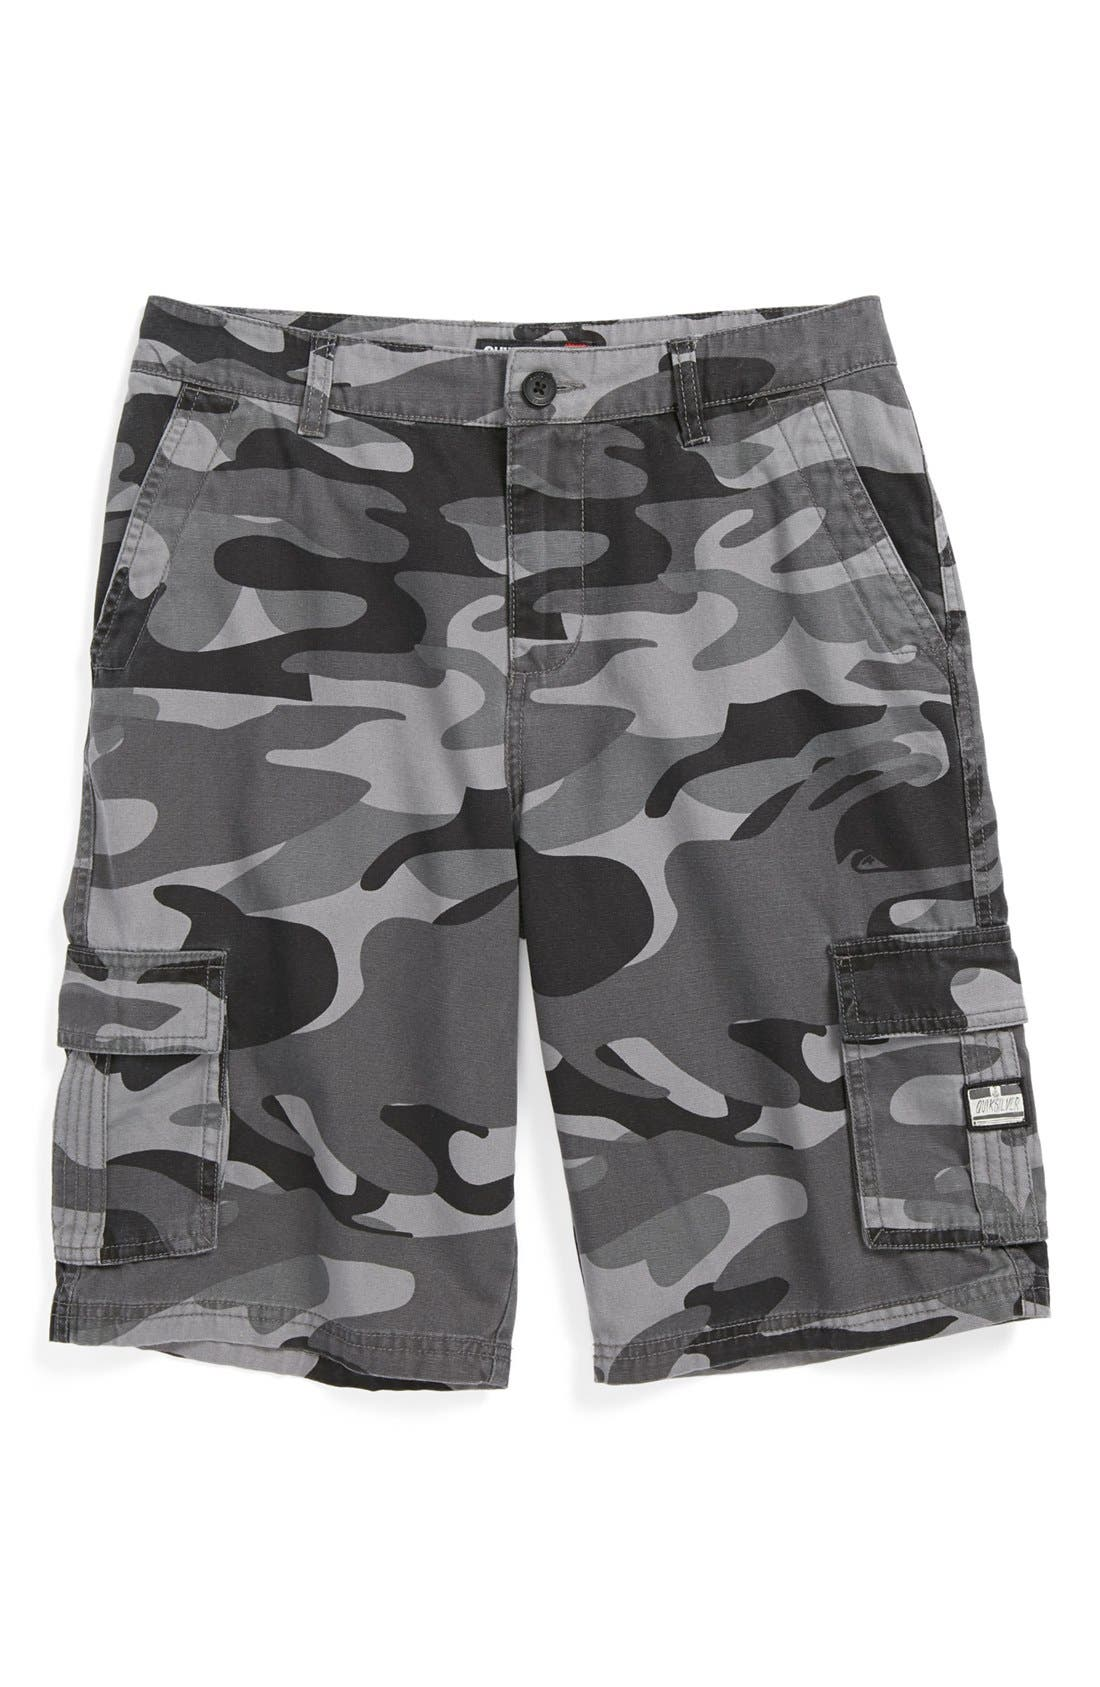 Alternate Image 1 Selected - Quiksilver 'Sue Fley' Camo Shorts (Big Boys)